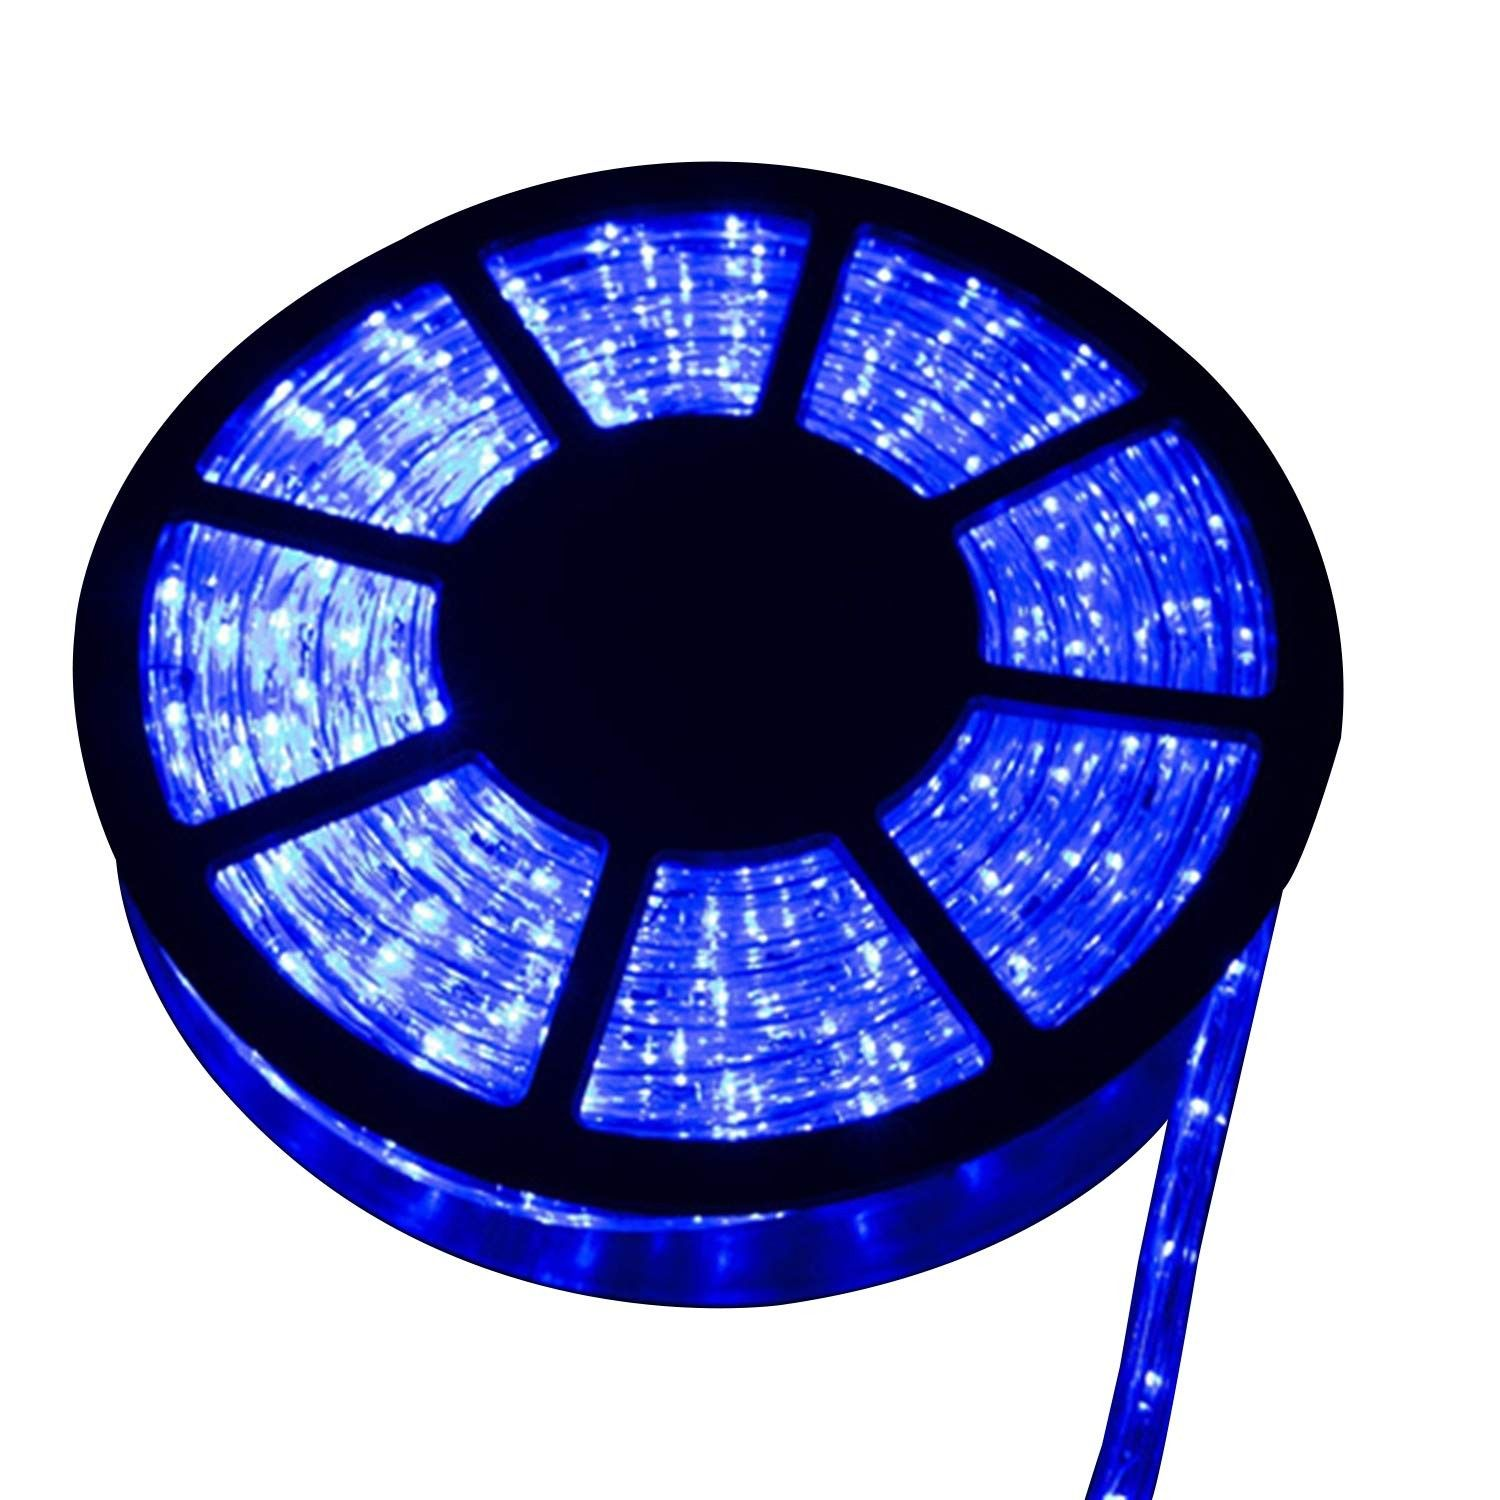 Led Rope Light 50ft 540 Leds Led Strip Lights Indoor Outdoor Waterproof Decorative Lighting Kit Blue Blue C8187ikmid9 Led Rope Lights Led Rope Rope Light